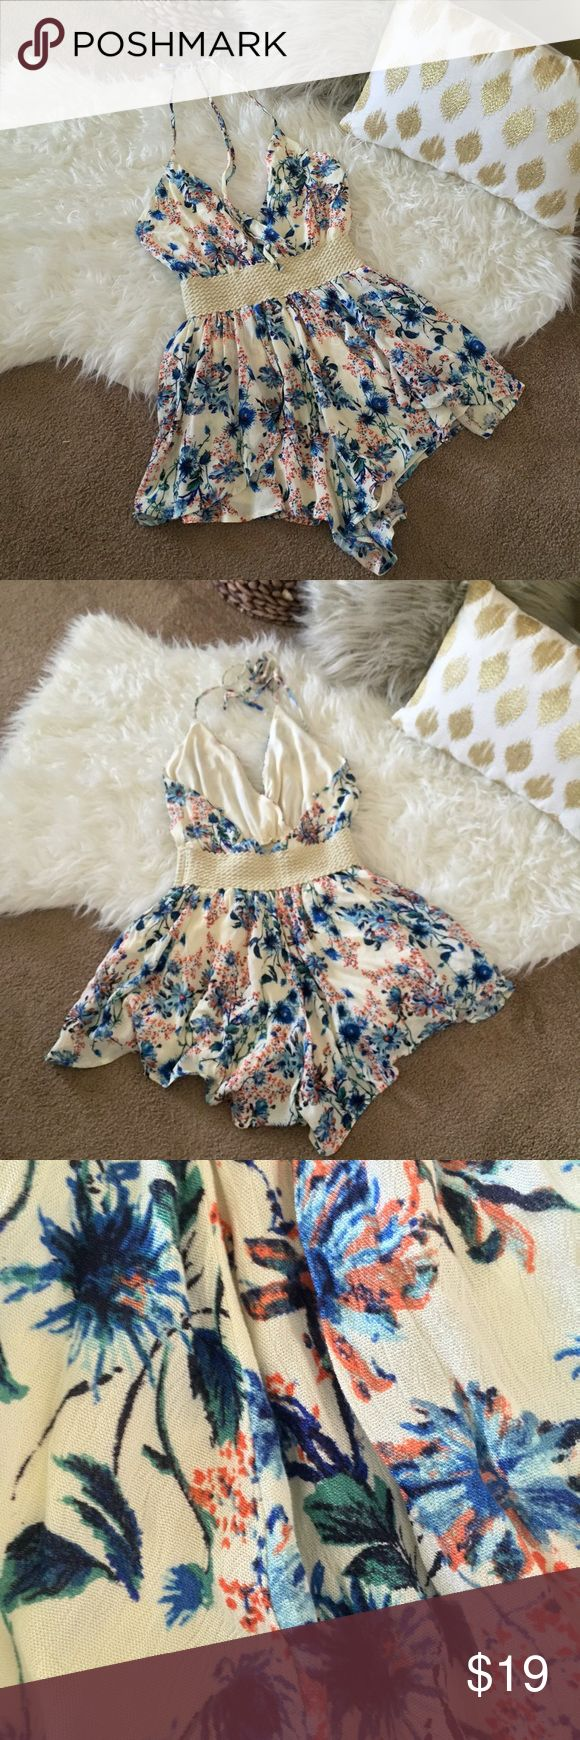 Trac Halter Romper A flowy, floral halter romper // Extra long ties allow for neckline to be adjusted // Never worn, new with tags // Can fit S/M Other